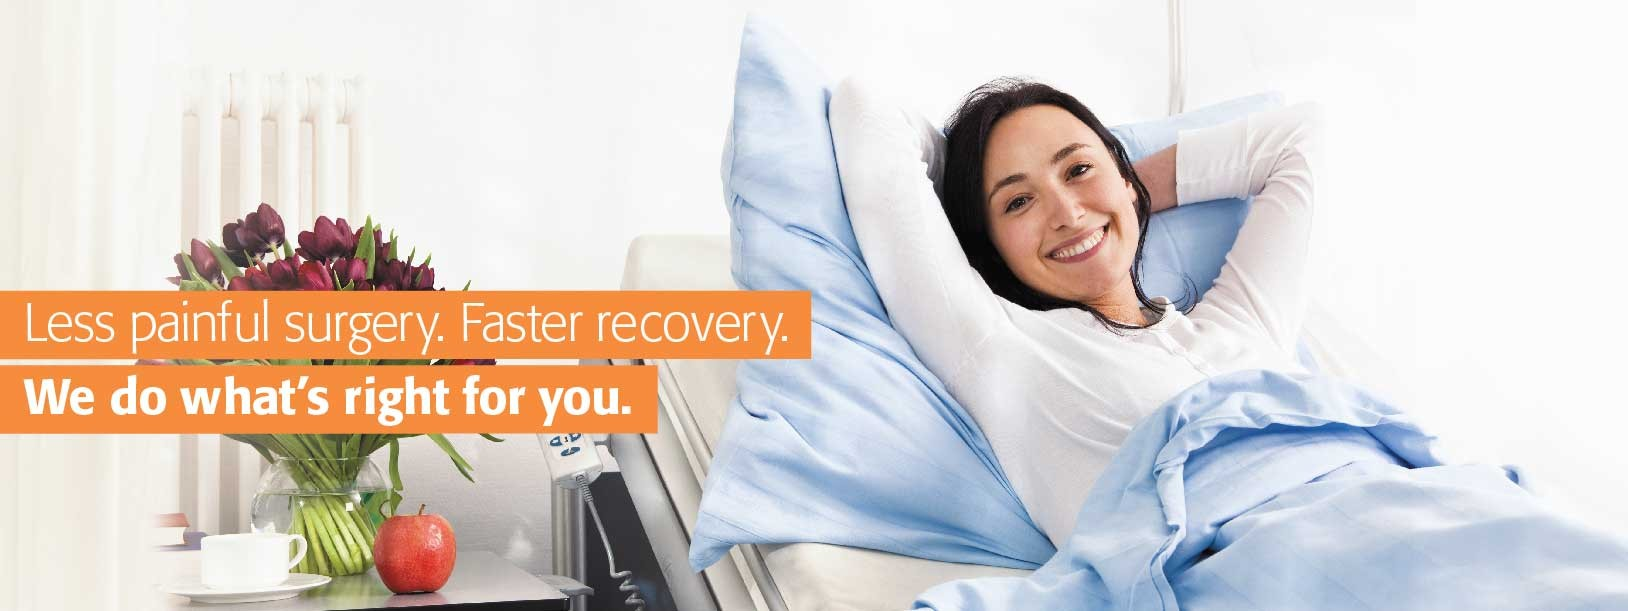 Less painful surgery. Faster recovery. We do what's right for you.